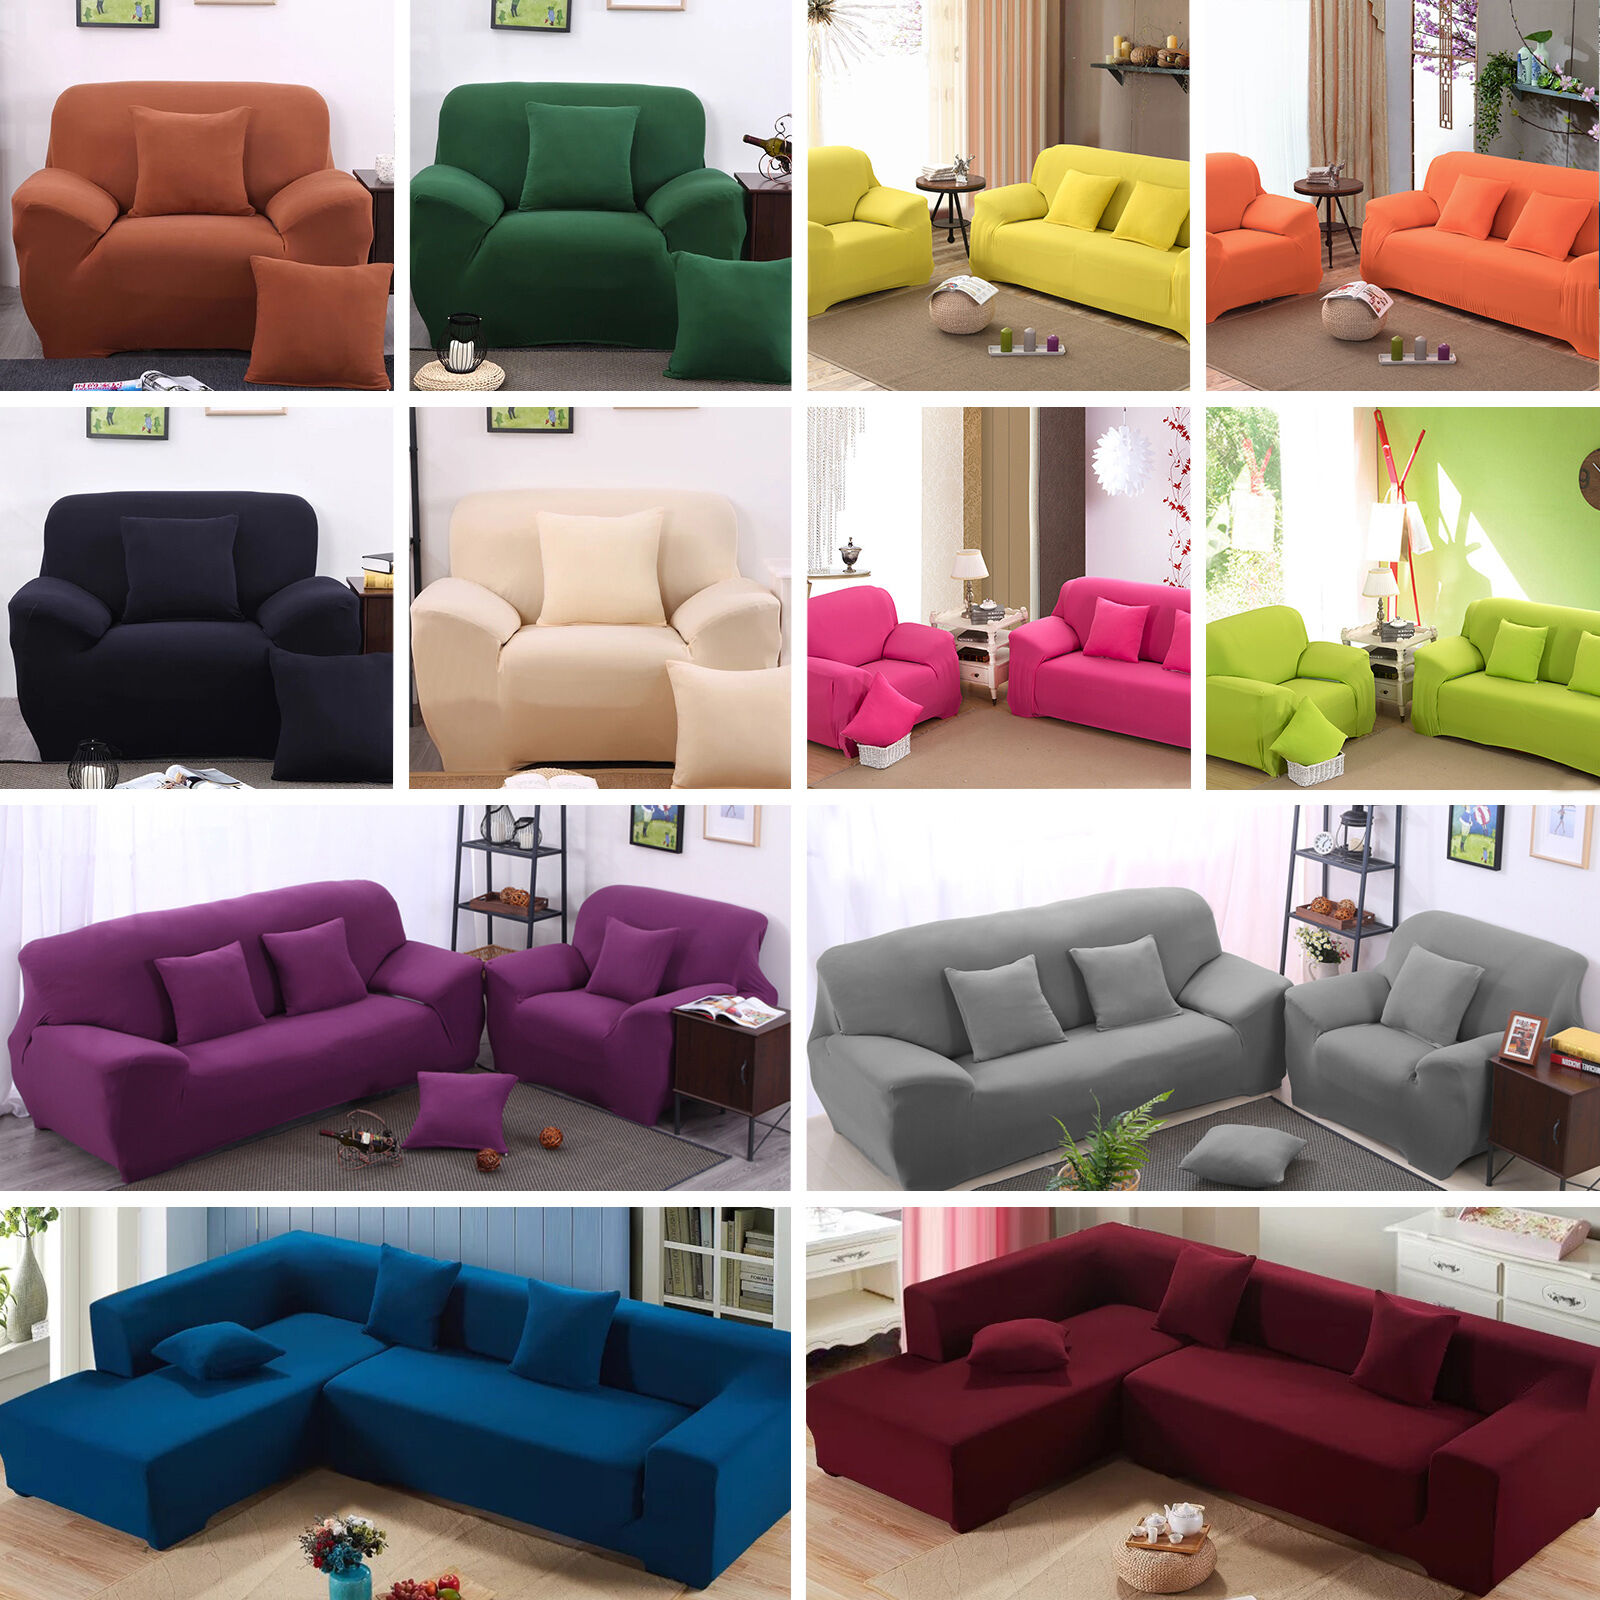 Astounding Details Over 2018 Hot L Shape Stretch Elastic Fabric Sofa Cover Sectional Corner Couch Covers Ocoug Best Dining Table And Chair Ideas Images Ocougorg